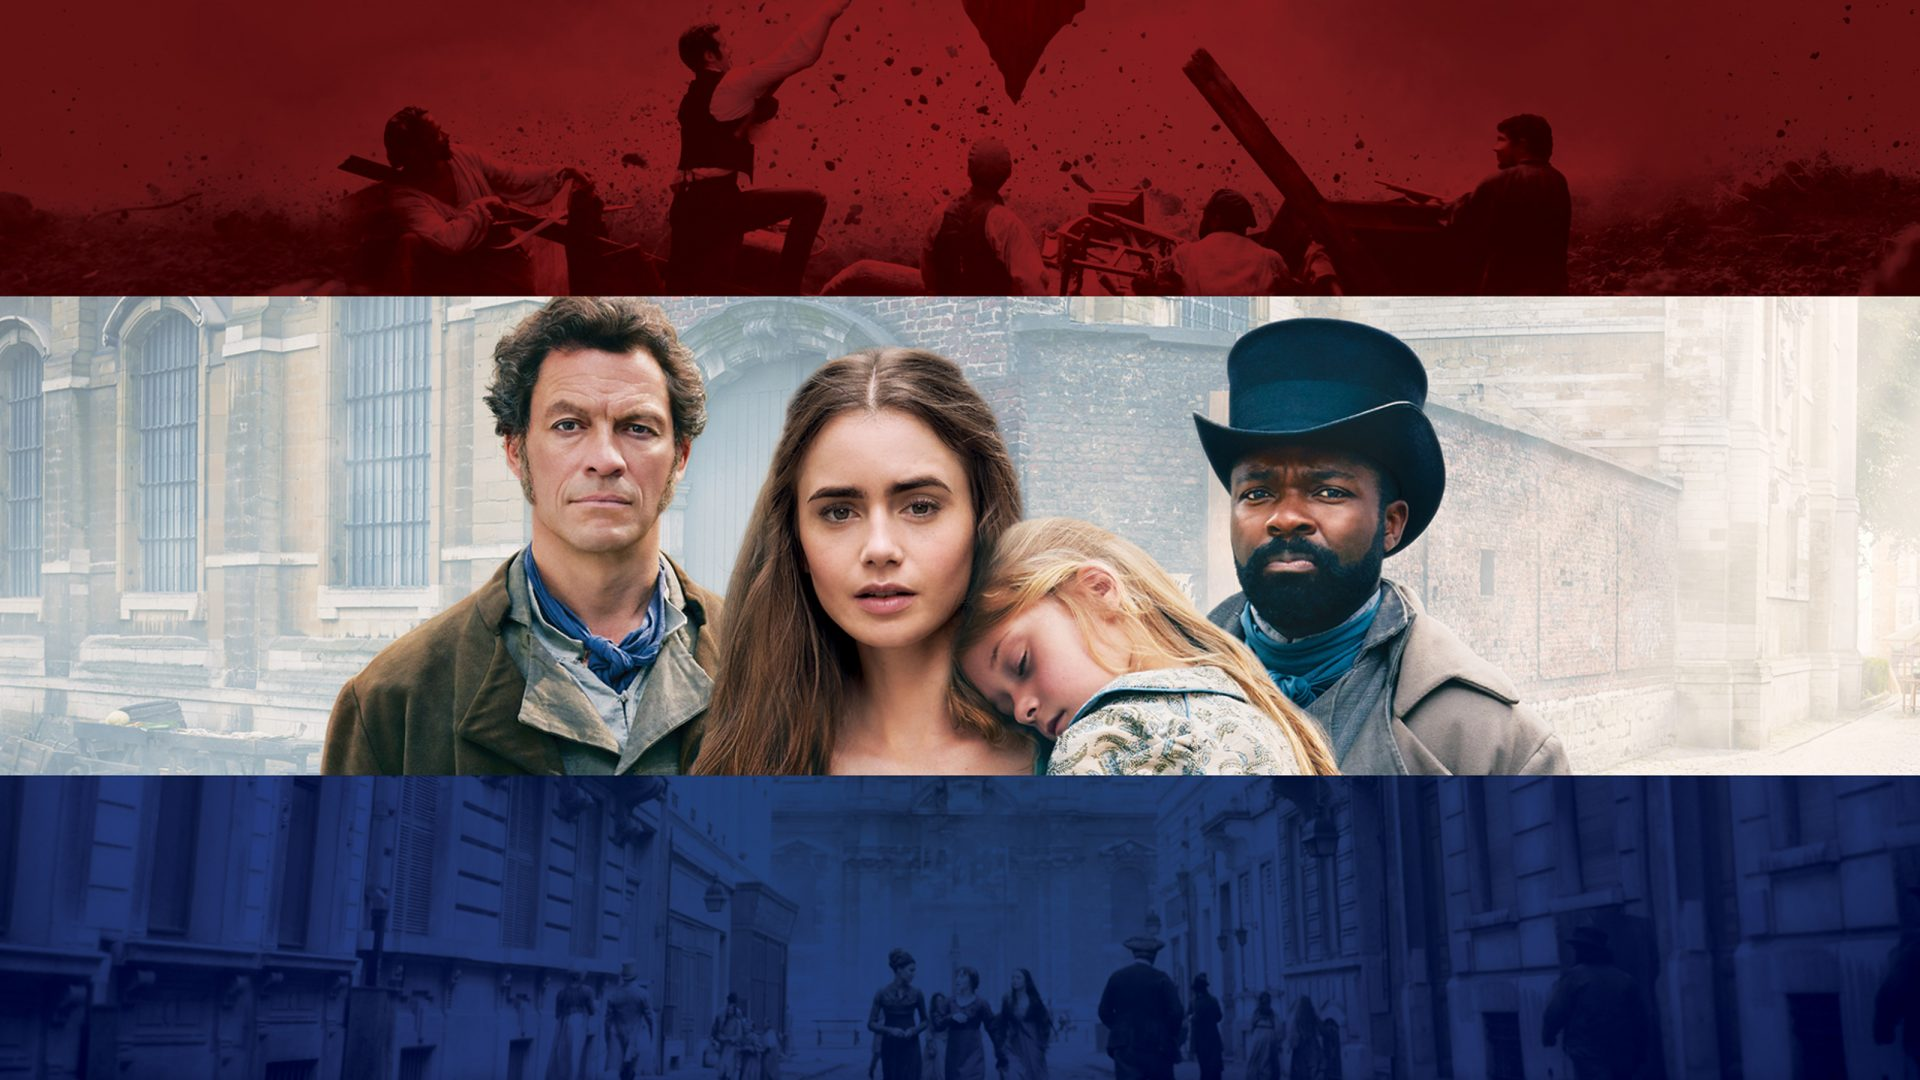 Get an Inside Look at the Upcoming PBS Les Misérables Miniseries